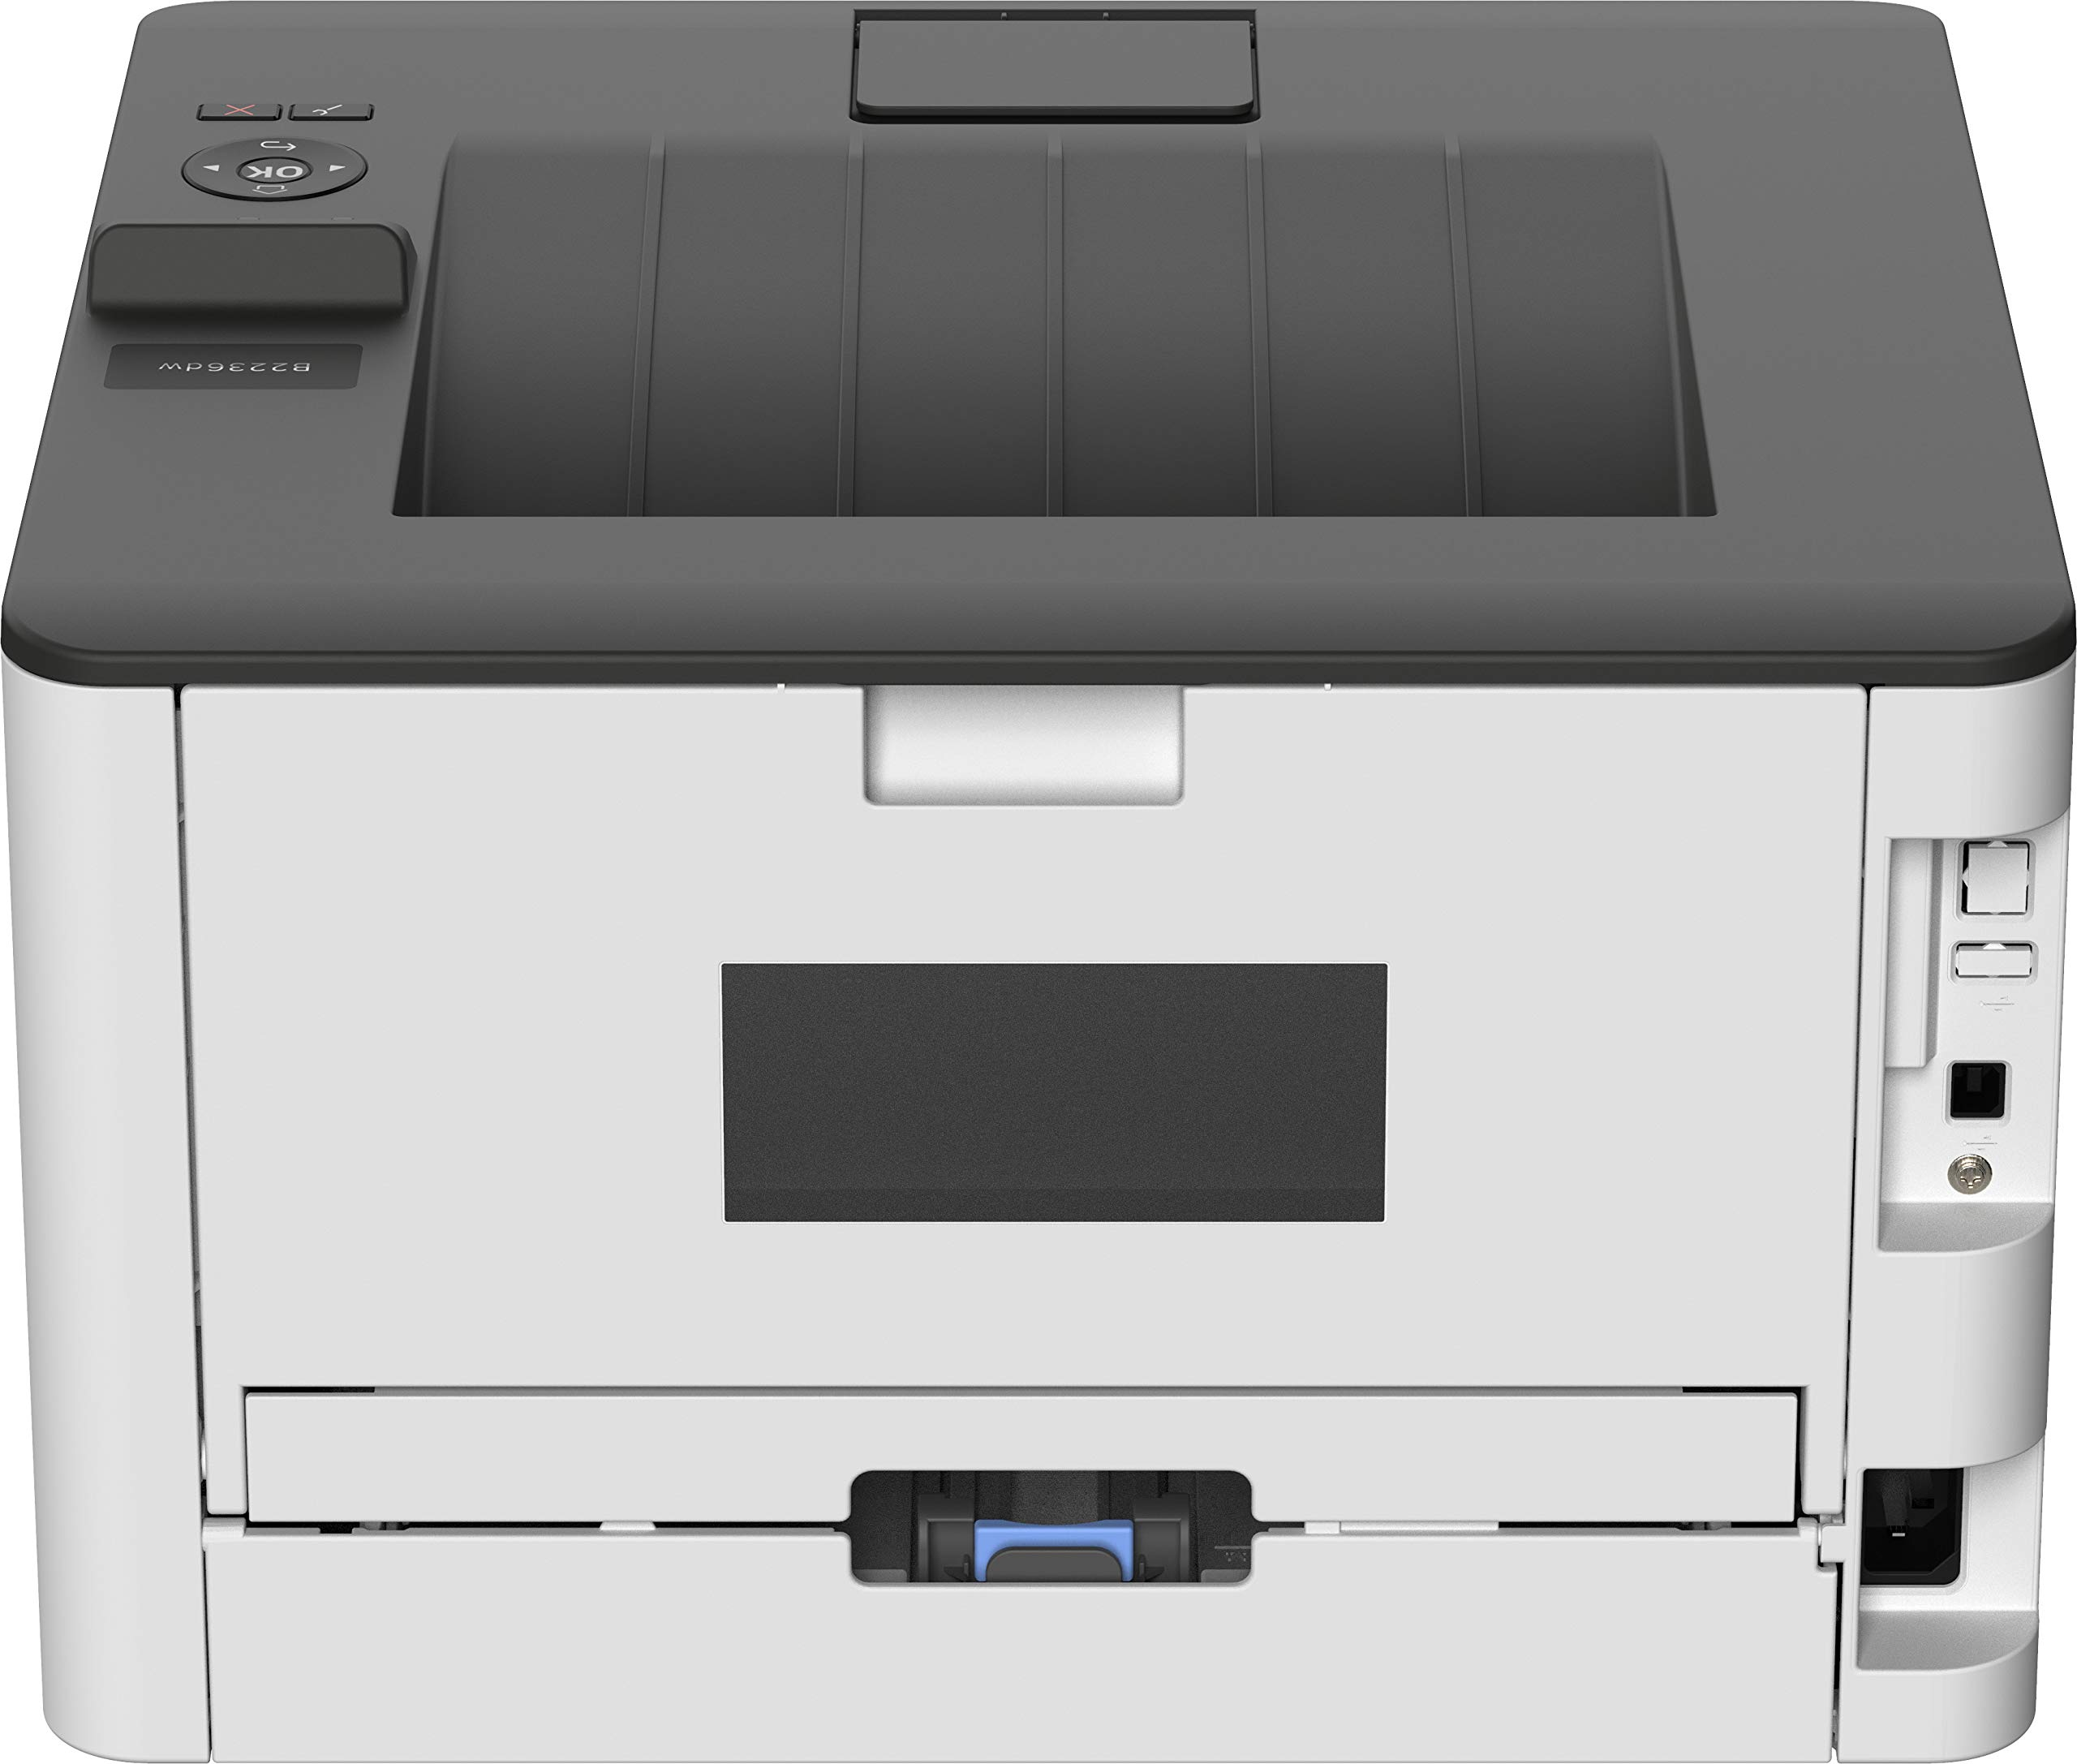 Lexmark B2236dw Monochrome Compact Laser Printer, Duplex Printing, Wireless Network Capabilities (18M0100) by Lexmark (Image #2)